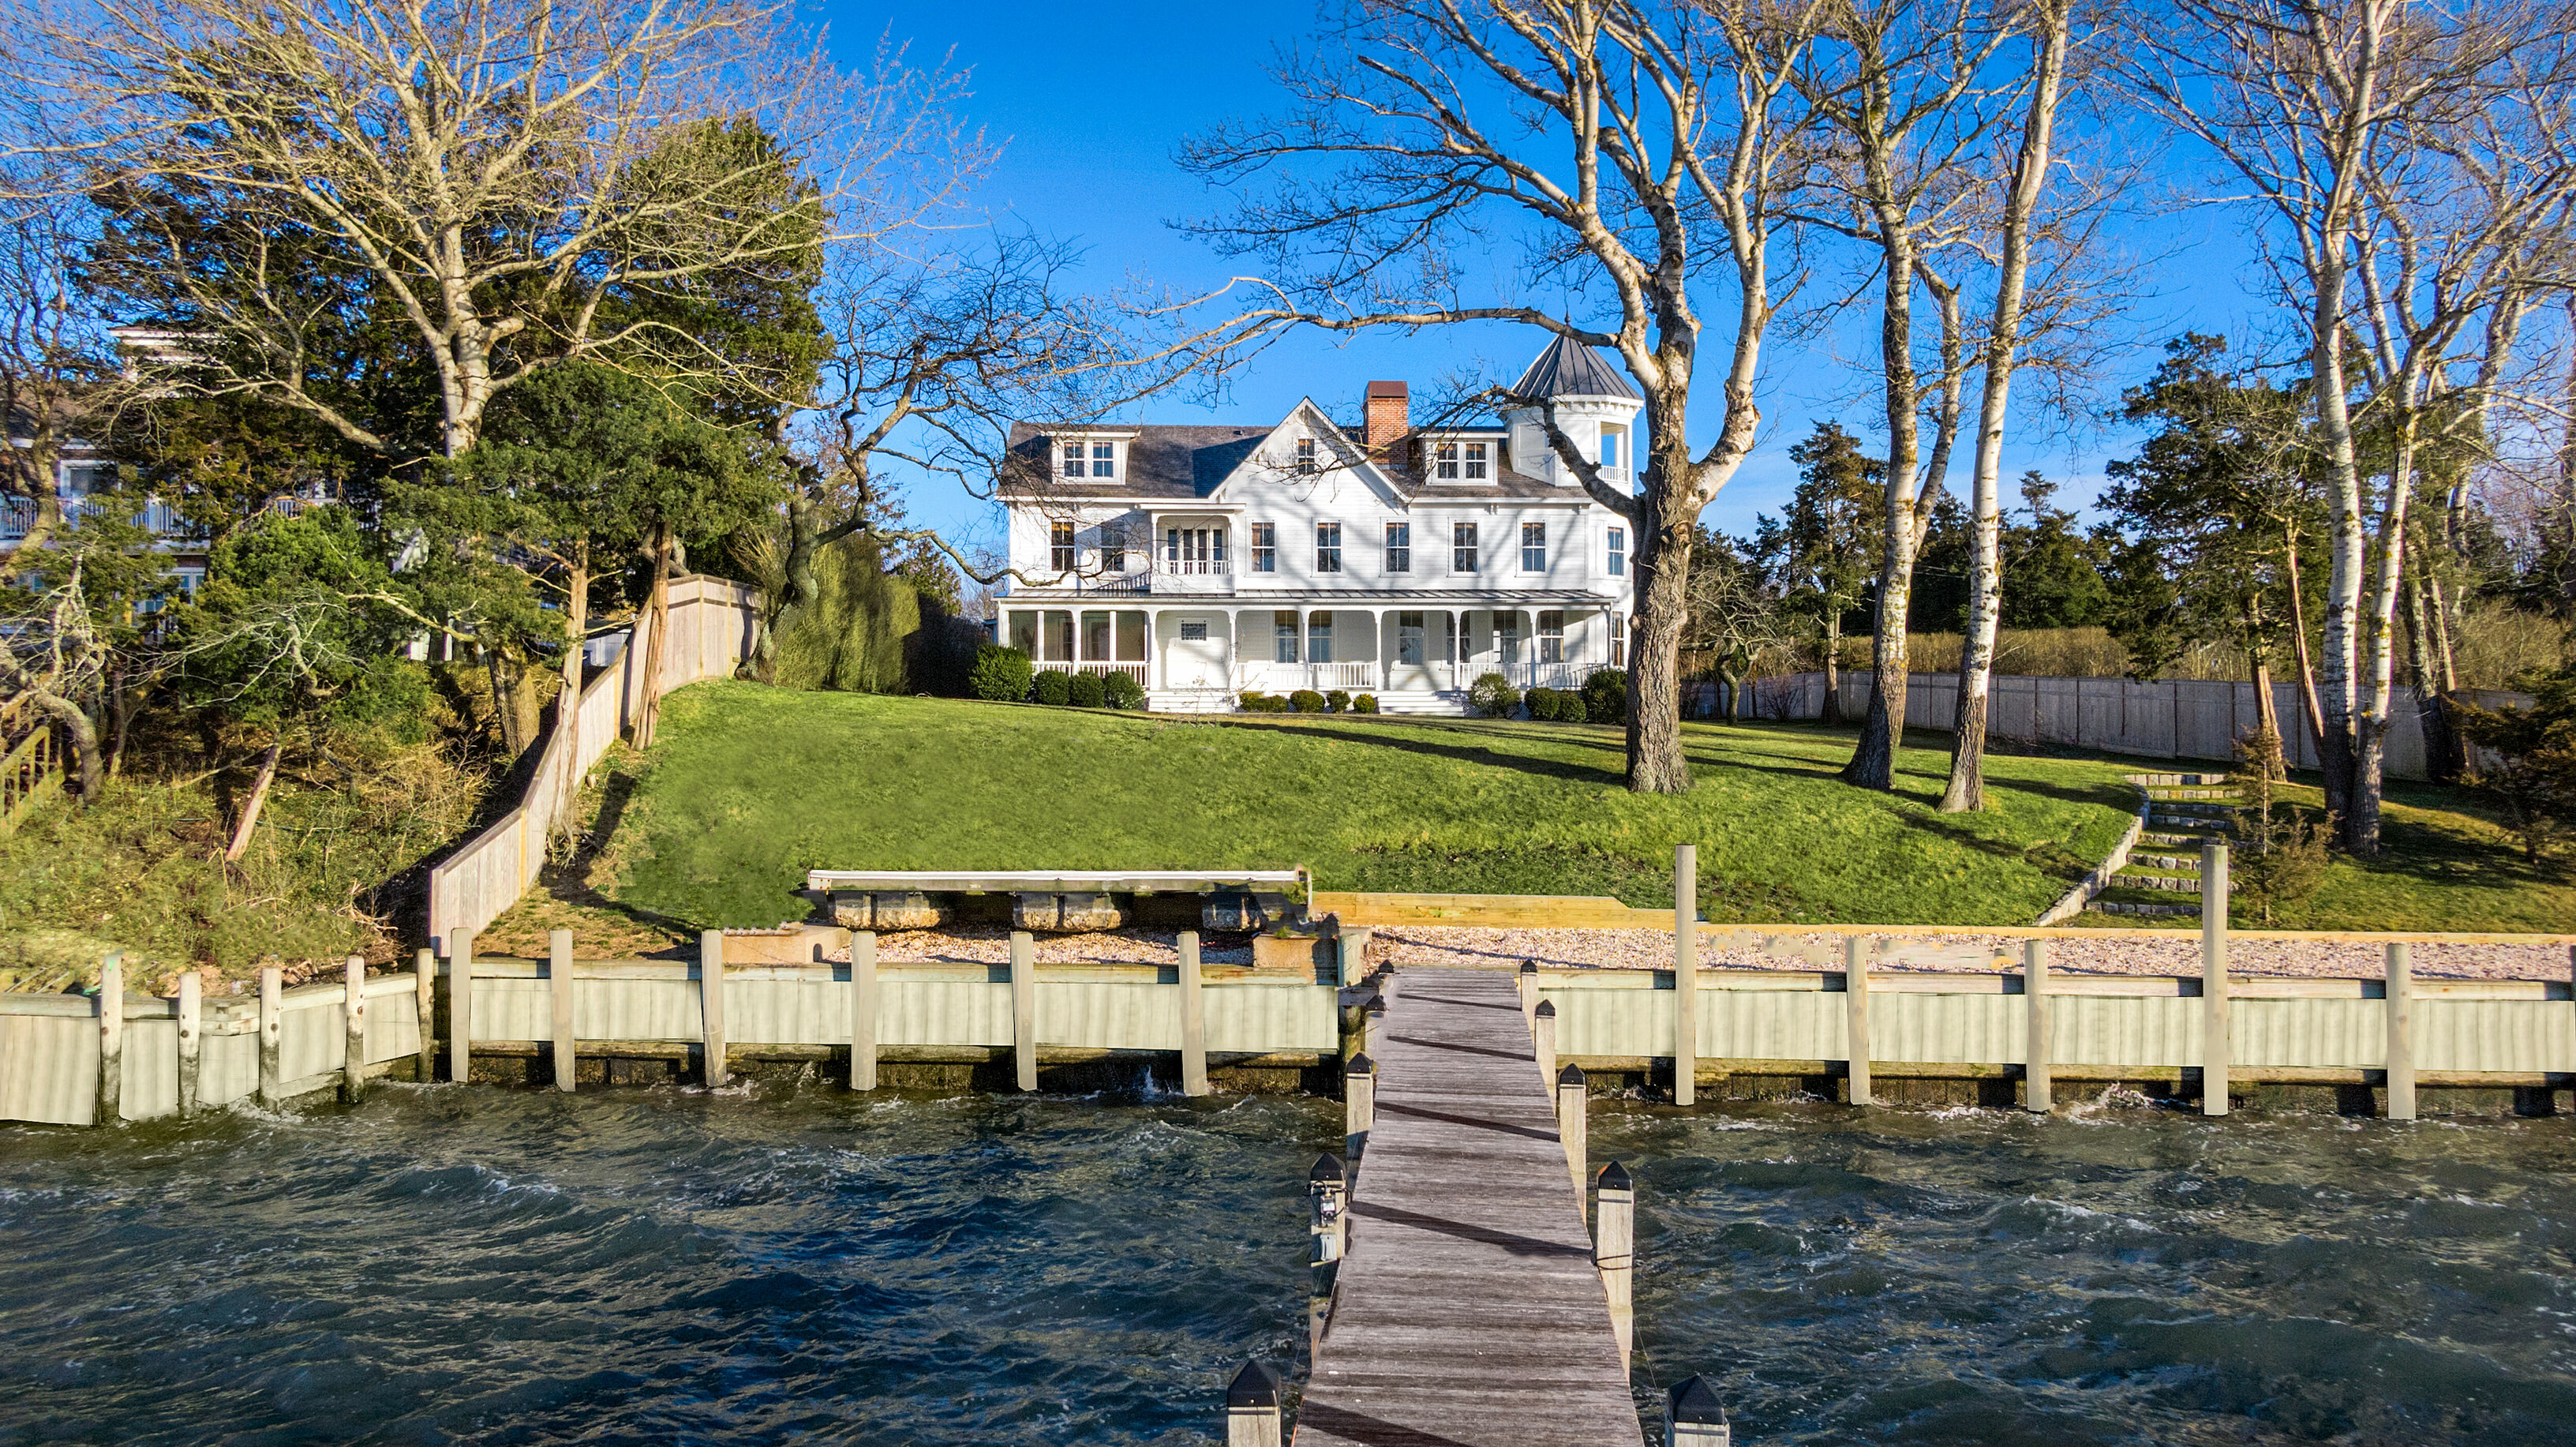 26 Elder Ave - Hampton Bays, New York